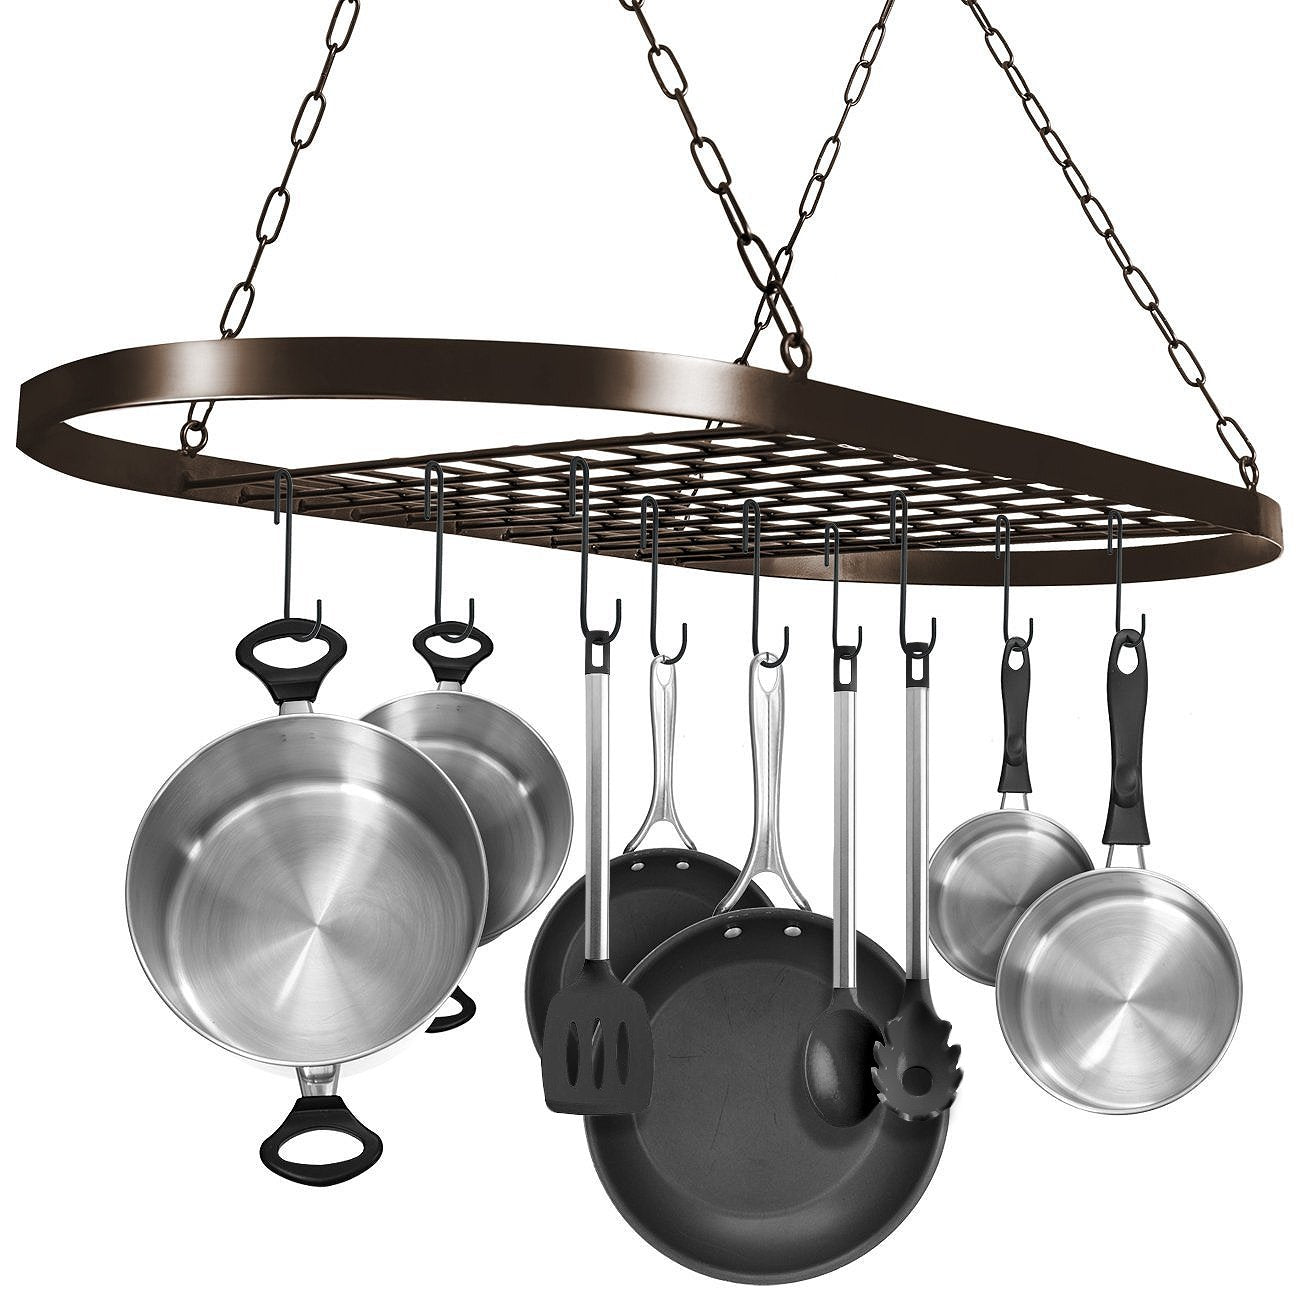 Sorbus Pot and Pan Rack for Ceiling with Hooks — Decorative Oval Mounted Storage Rack — Multi-Purpose Organizer for Home, Restaurant, Kitchen Cookware, Utensils, Books, Household (Hanging Bronze)